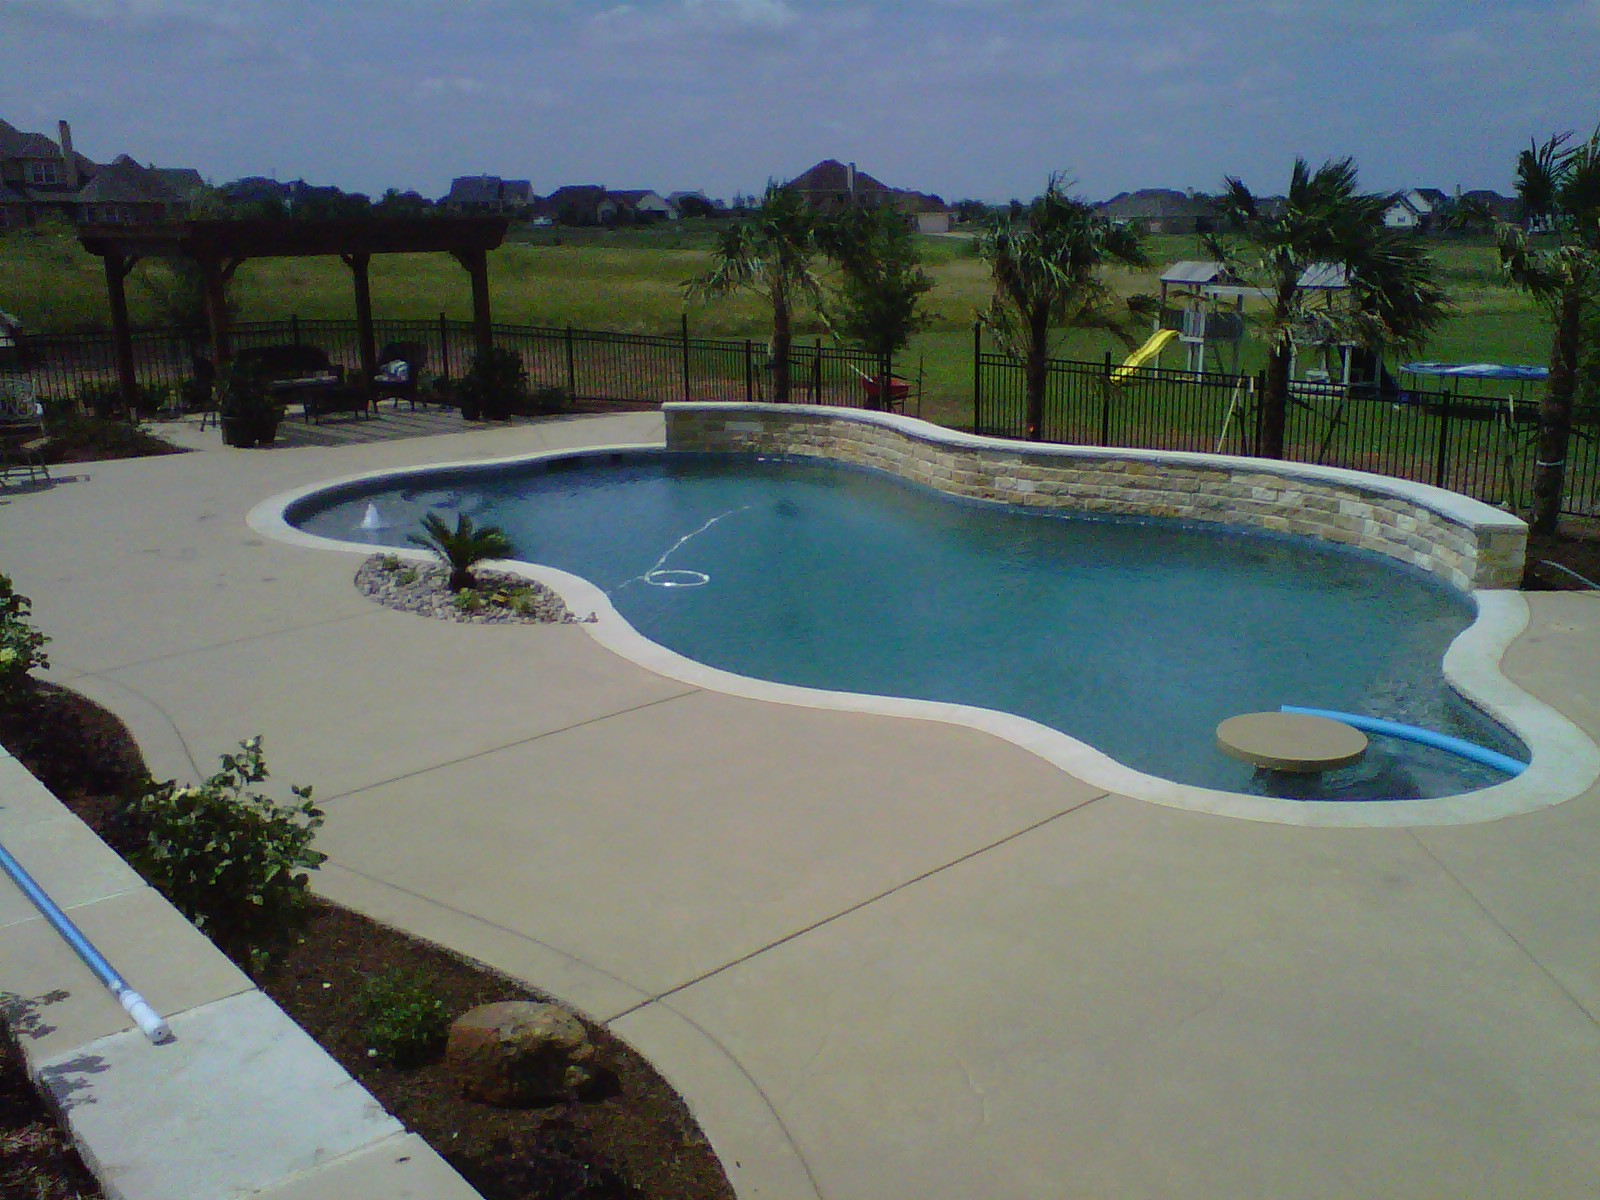 freeform pool in texas - started 3/27/12 - finished!!